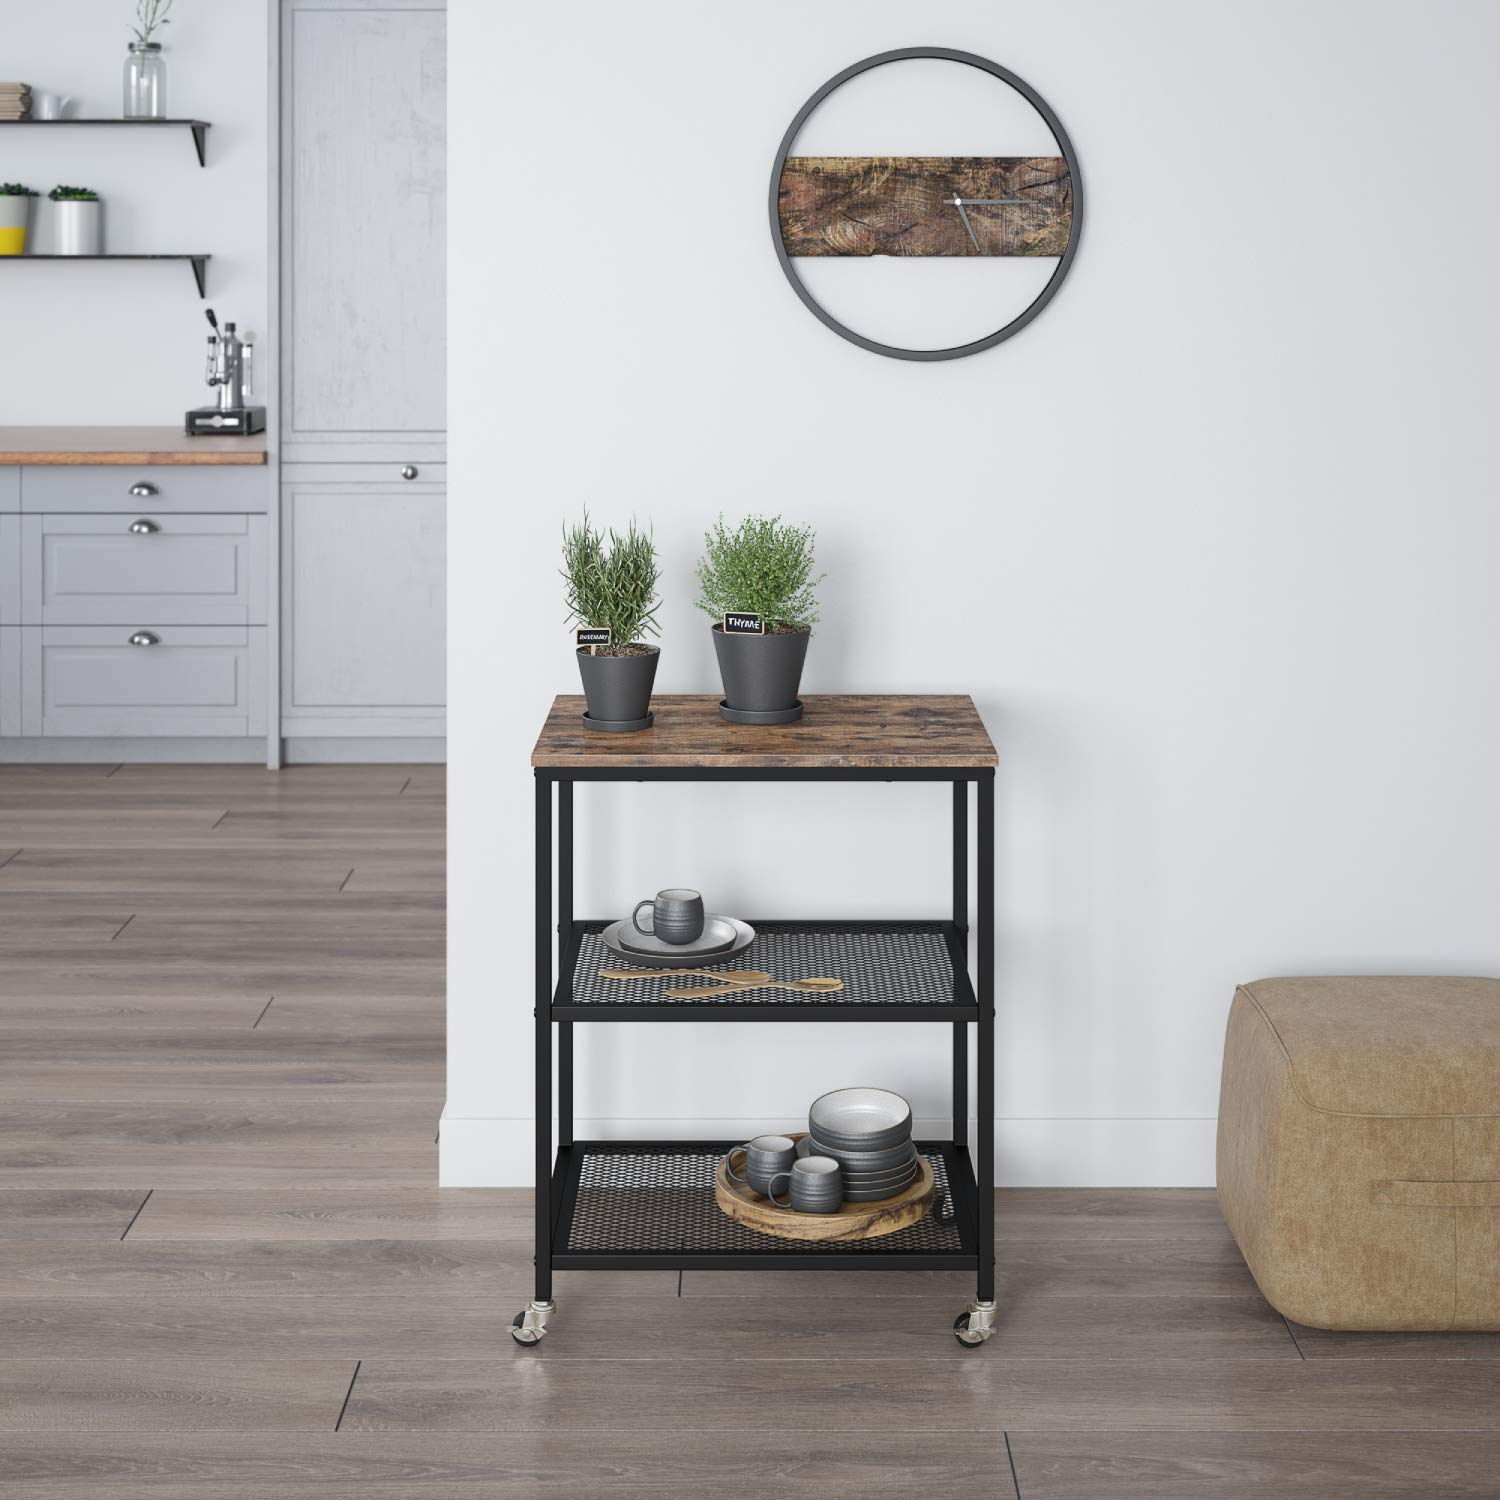 Rolling Utility Kitchen Serving Cart on Wheels 3-Tier Shelves Bathroom Kitchen Island Living Room Rustic Brown Home Office Storage with Metal Frame Ballucci Industrial Serving Cart